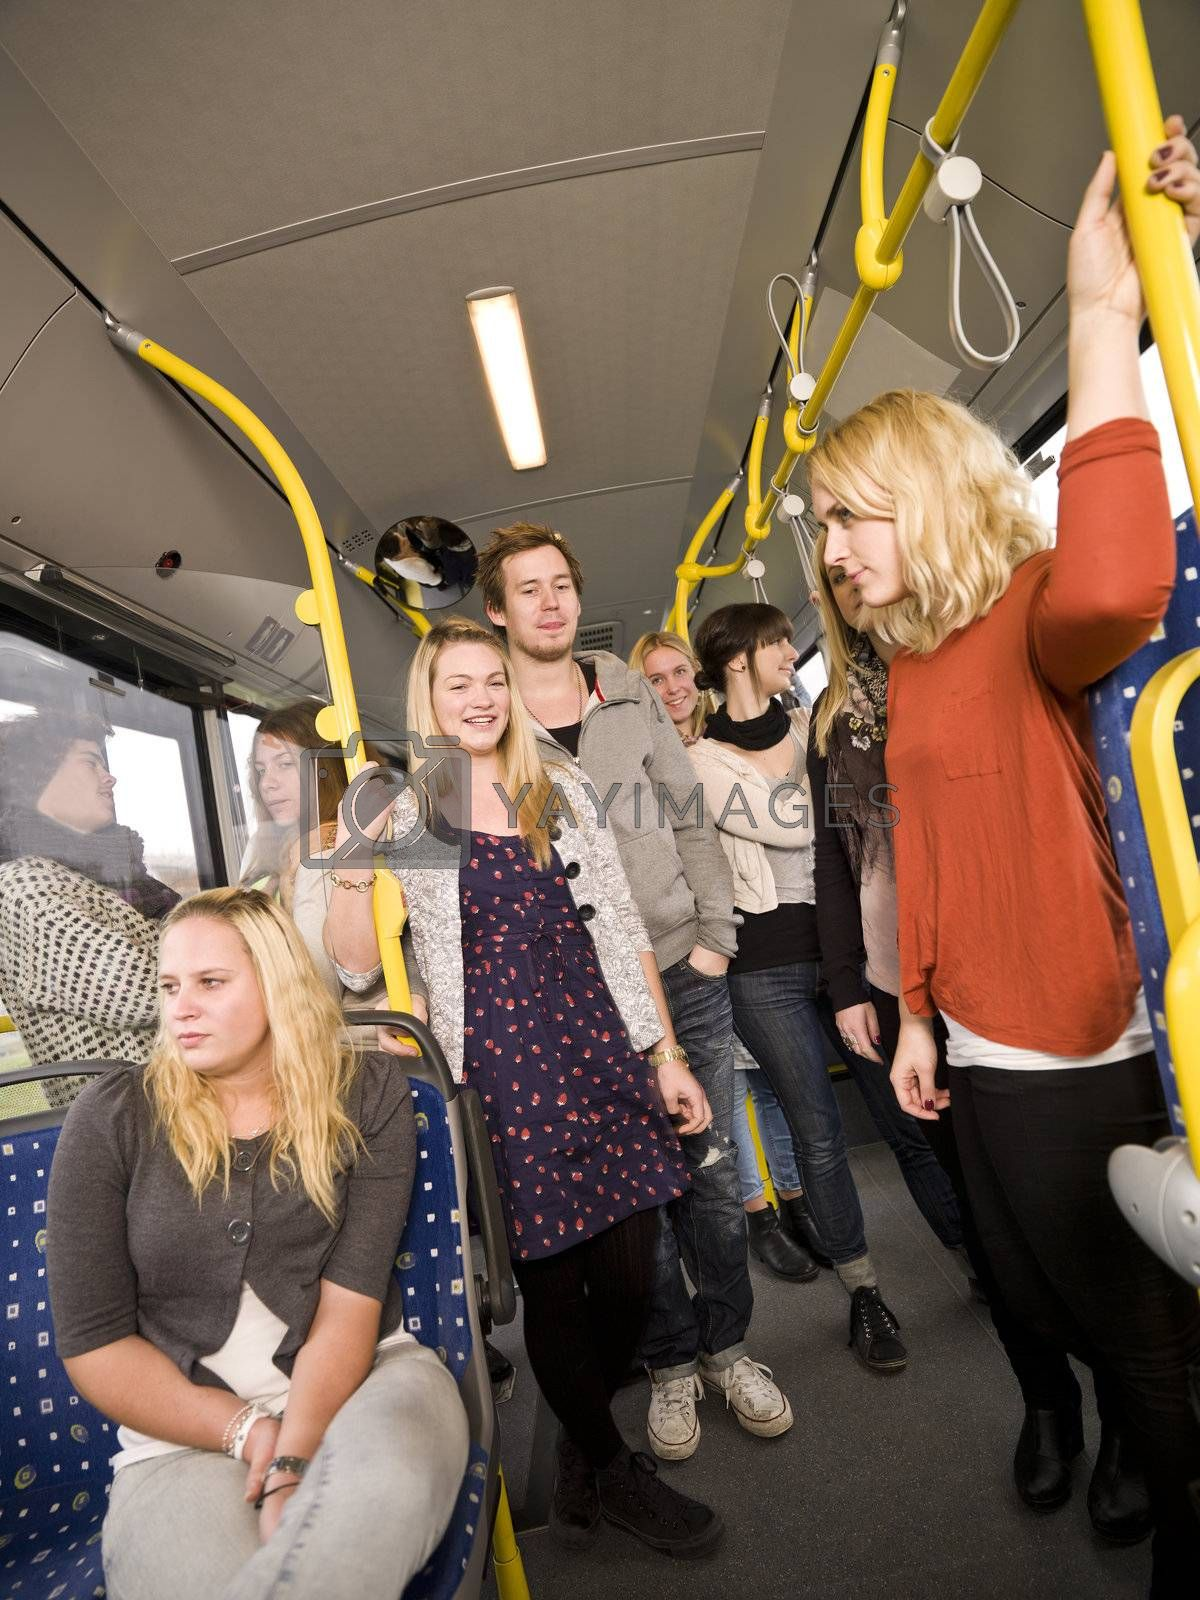 Group of people on the bus